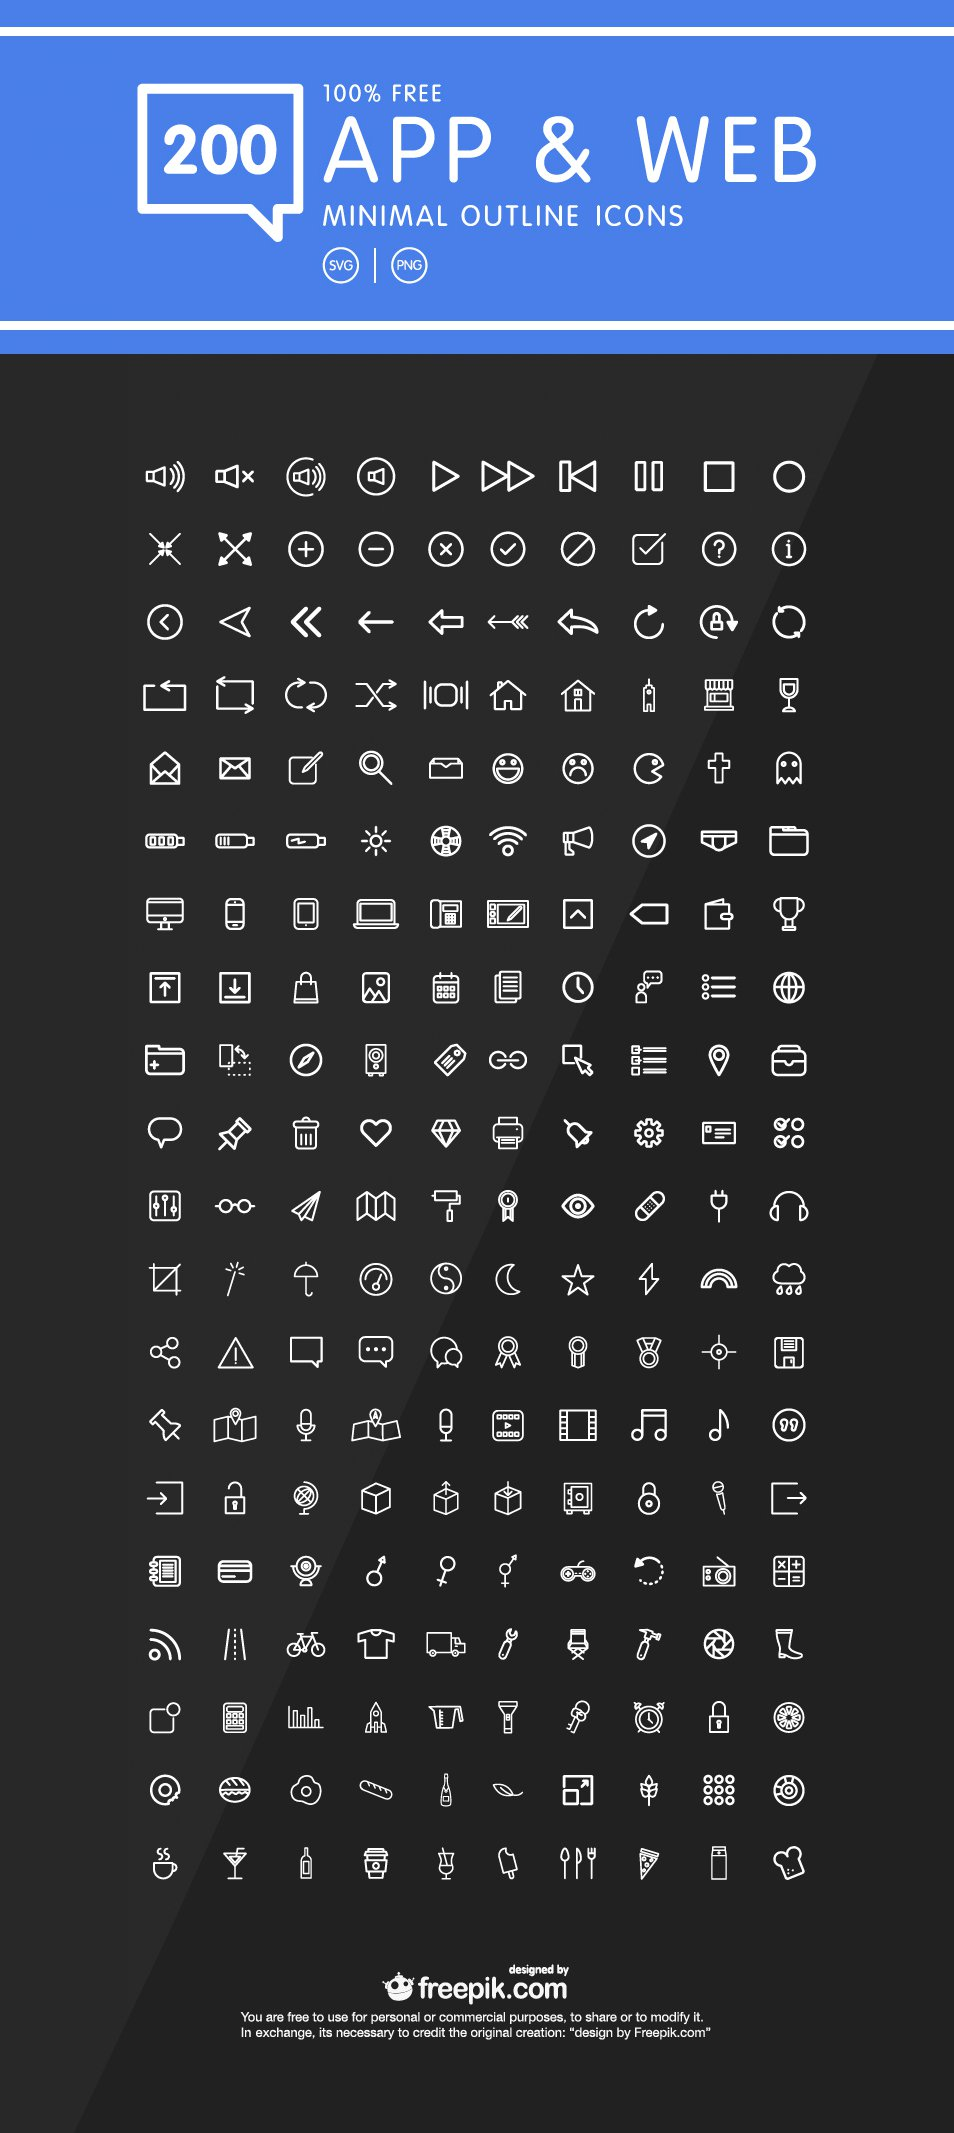 200 Minimal Outline Icons for Web & mobile App Design